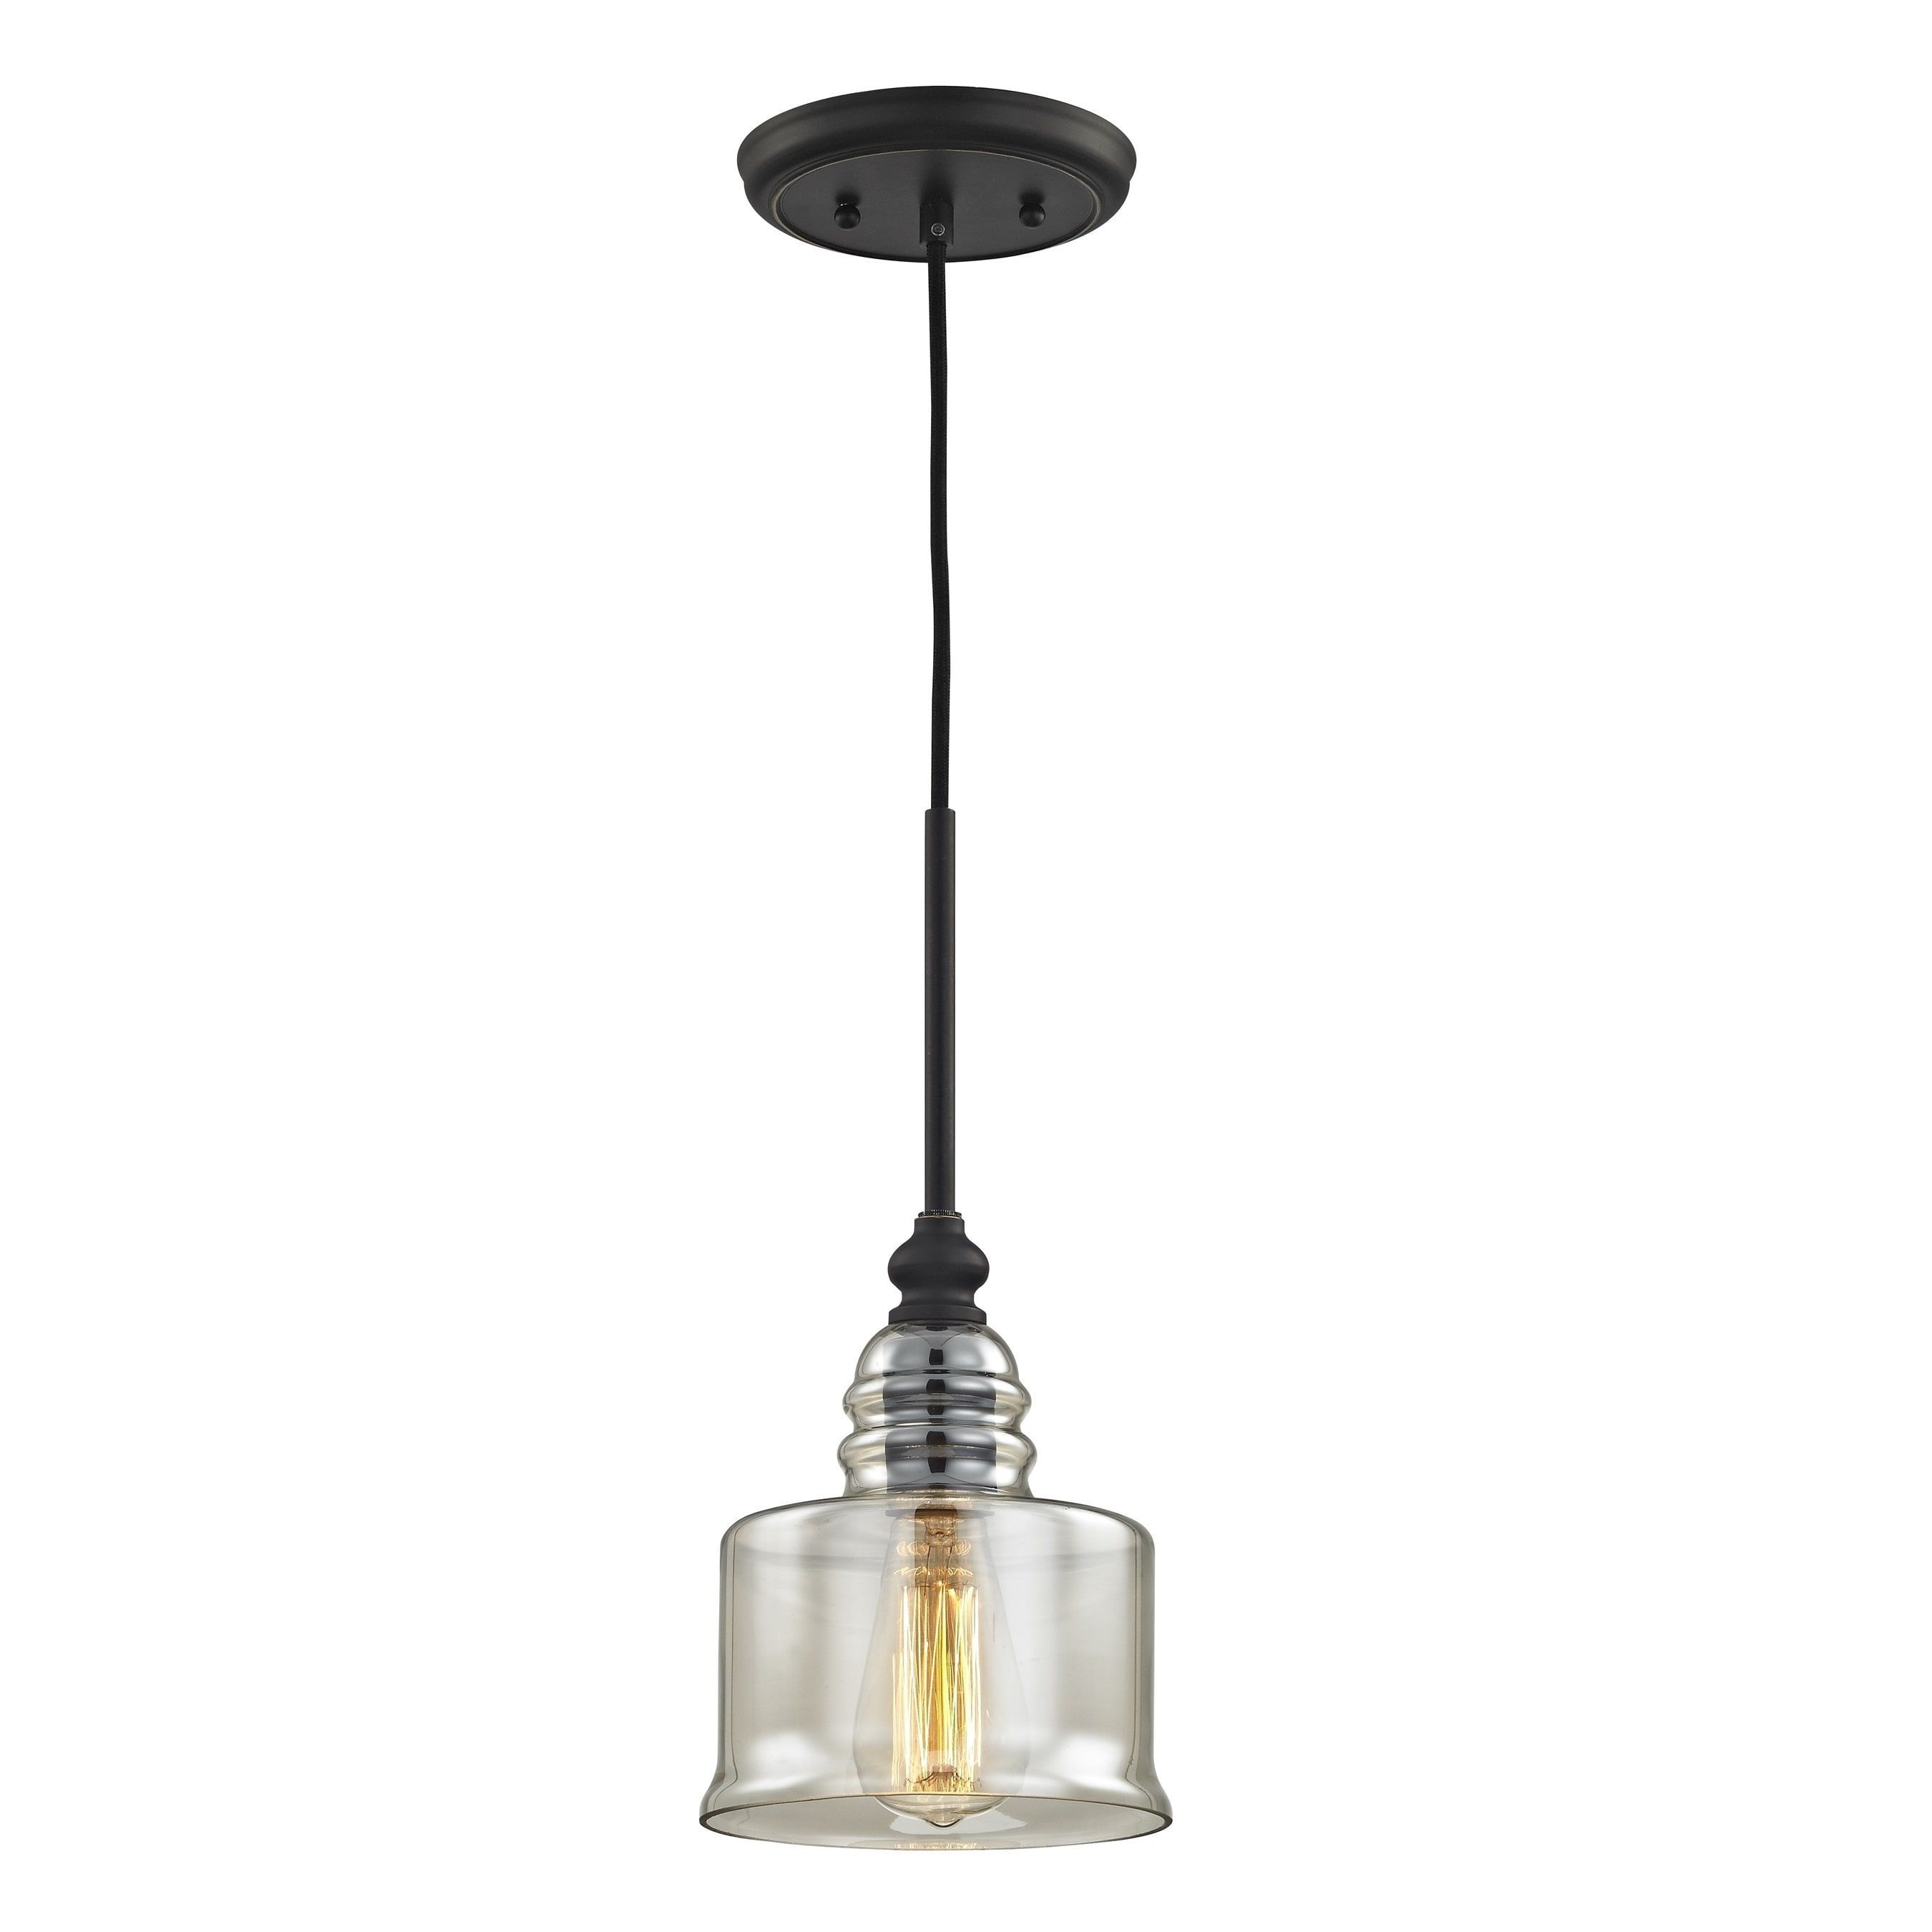 quotes general kitchen table drop flat lighting great chrome mini glass pendant for lights fixtures quoizel ceiling xbox bronze light hanging uk tiffany contemporary black preeminent textured